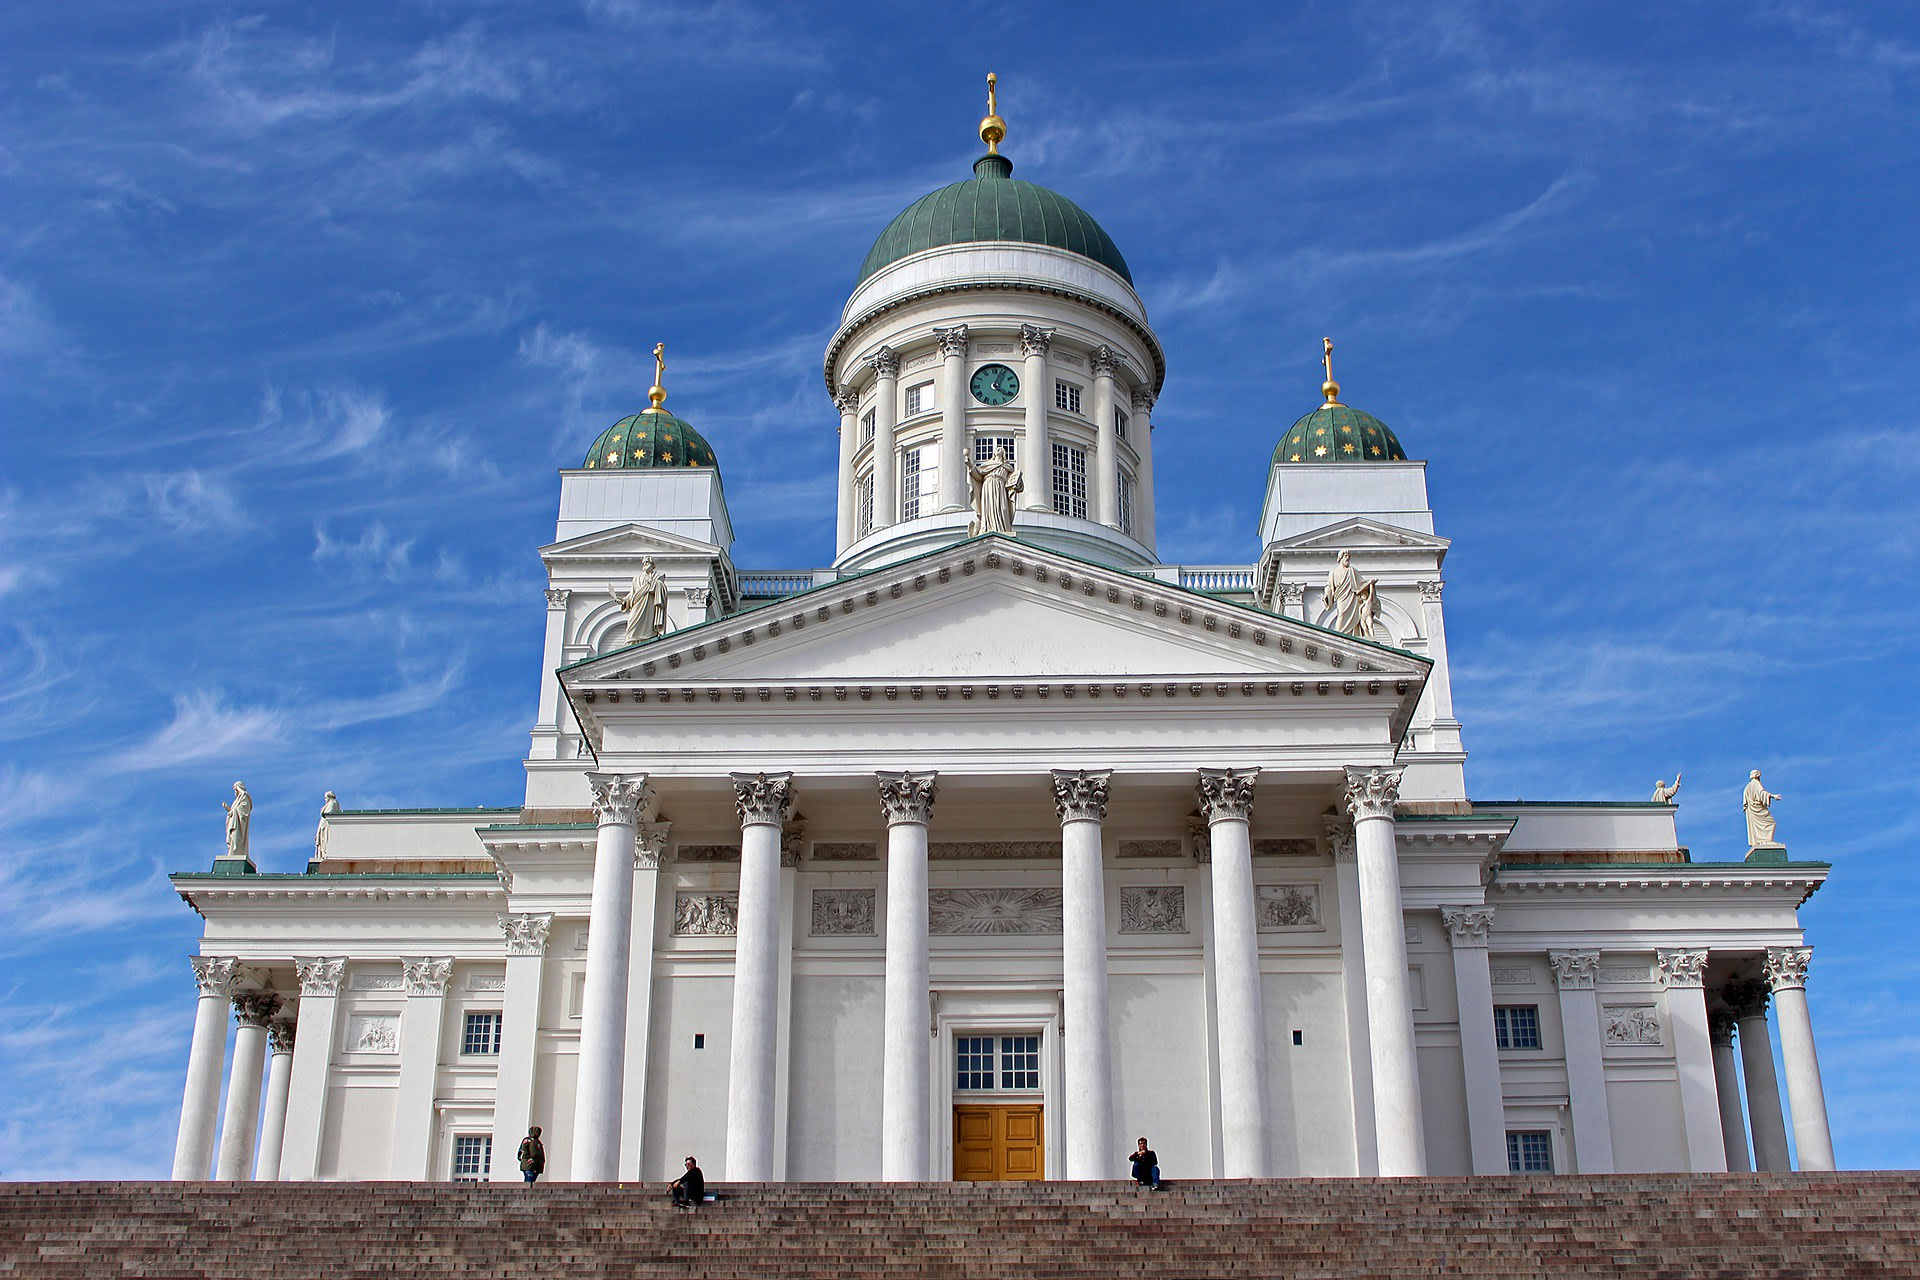 Spend some time at the Helsinki Cathedral